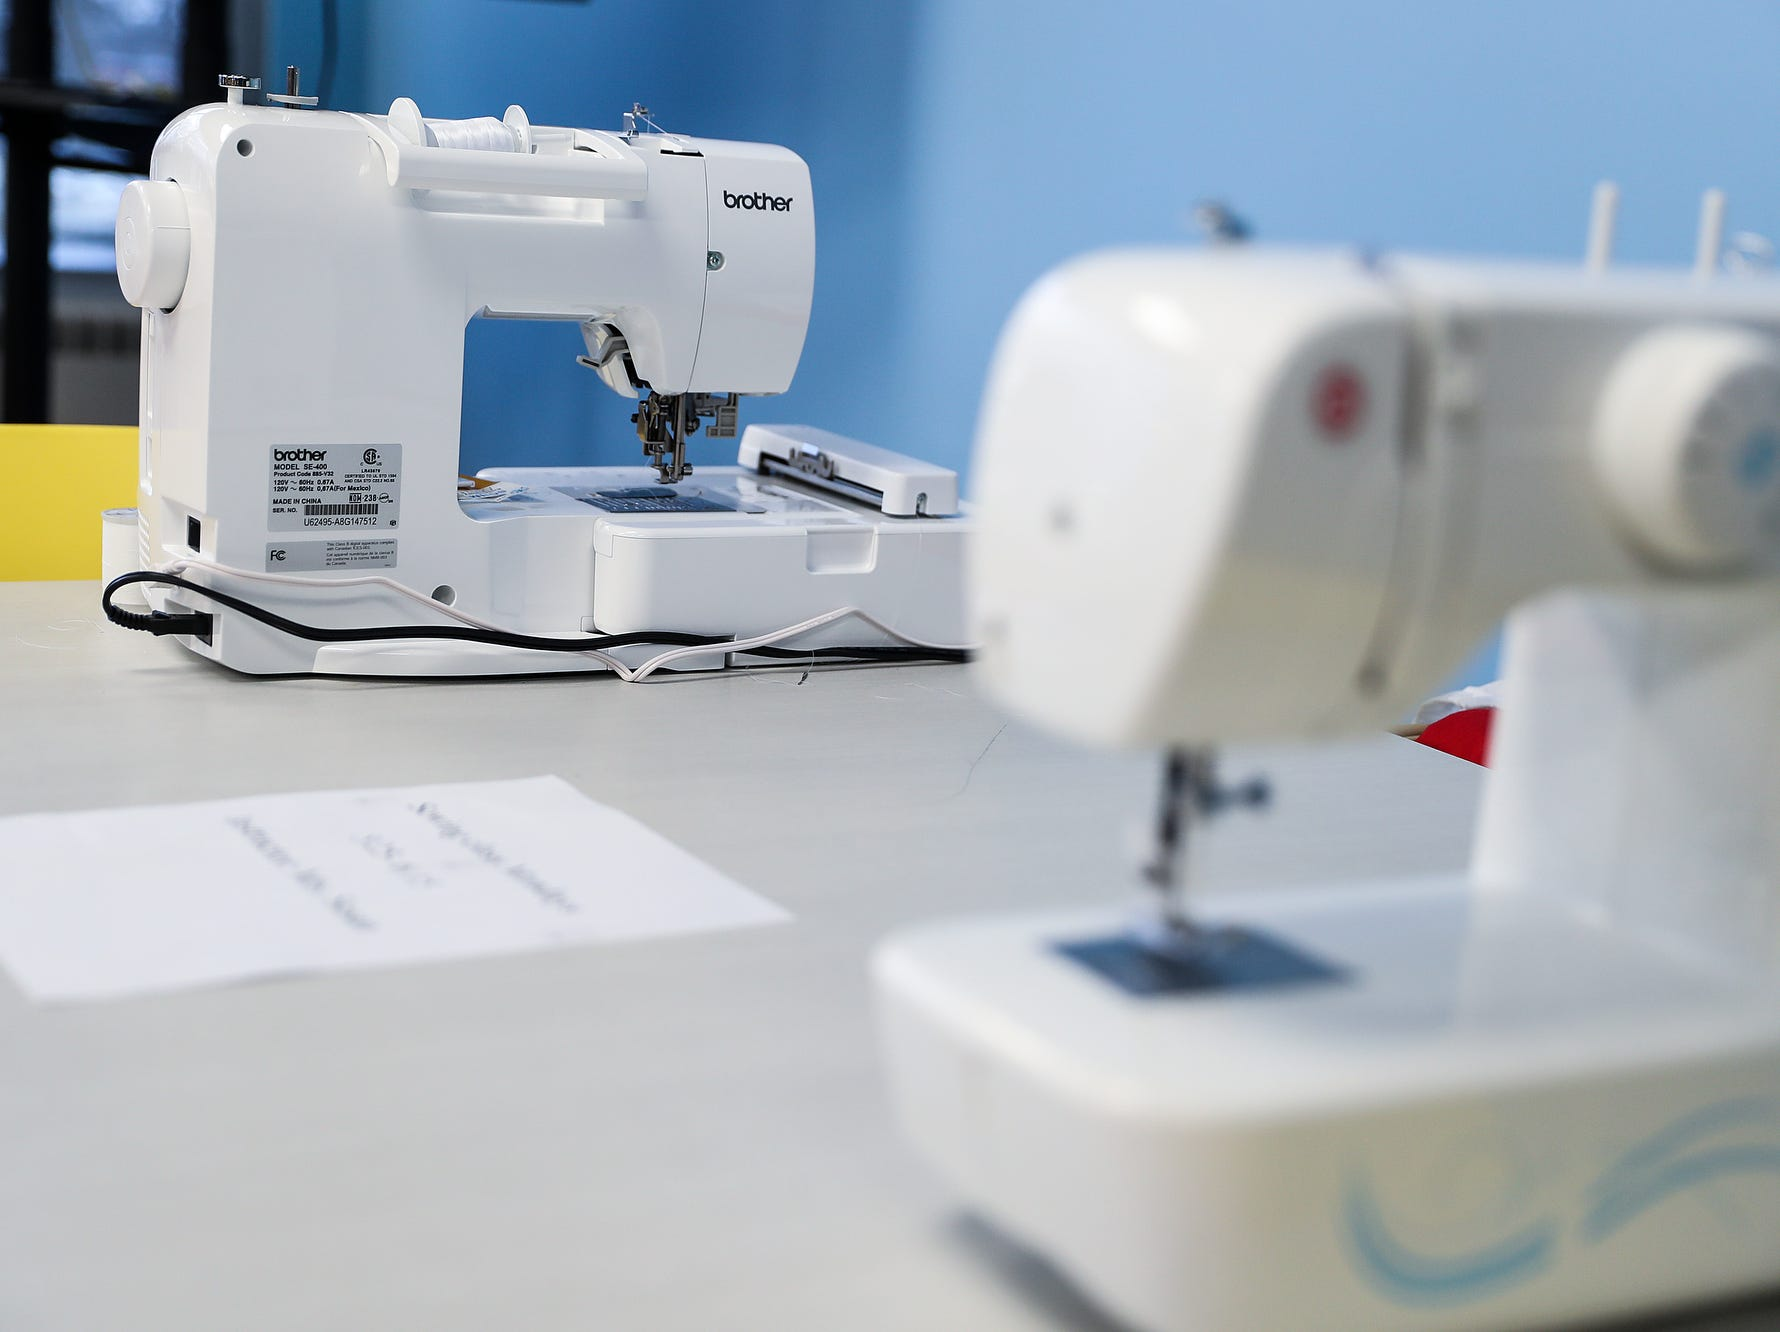 Sewing machines that will be used for Monday evening sewing classes are seen during the opening of the Best Buy Teen Tech Center at the MLK Community Center in Indianapolis, Tuesday, Jan. 29, 2019.